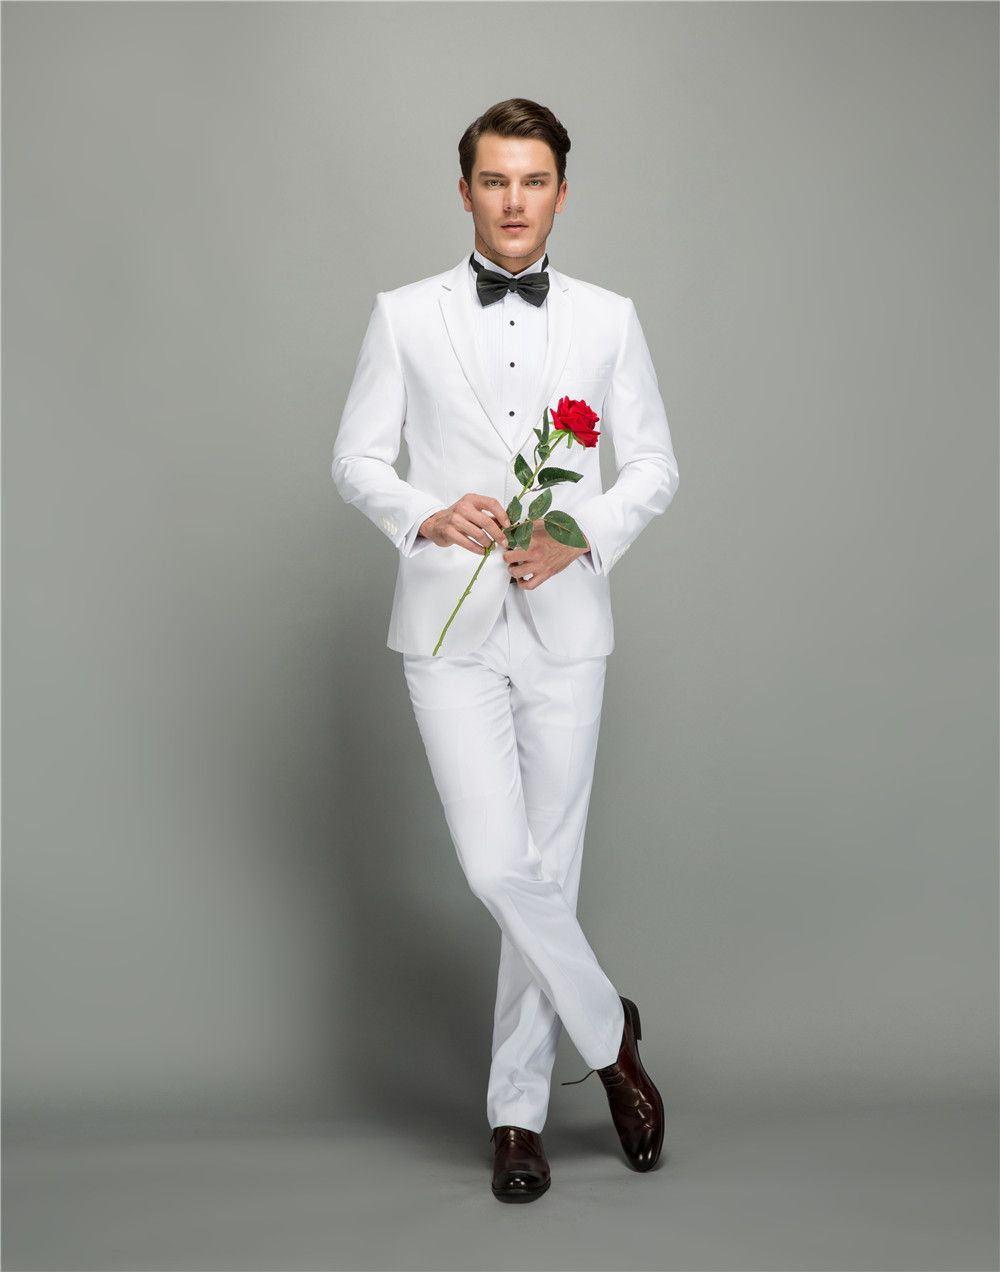 Plus size jacket dress for wedding  Wool Solid White Tailor Made Suits Plus Size Casual Wedding Dress